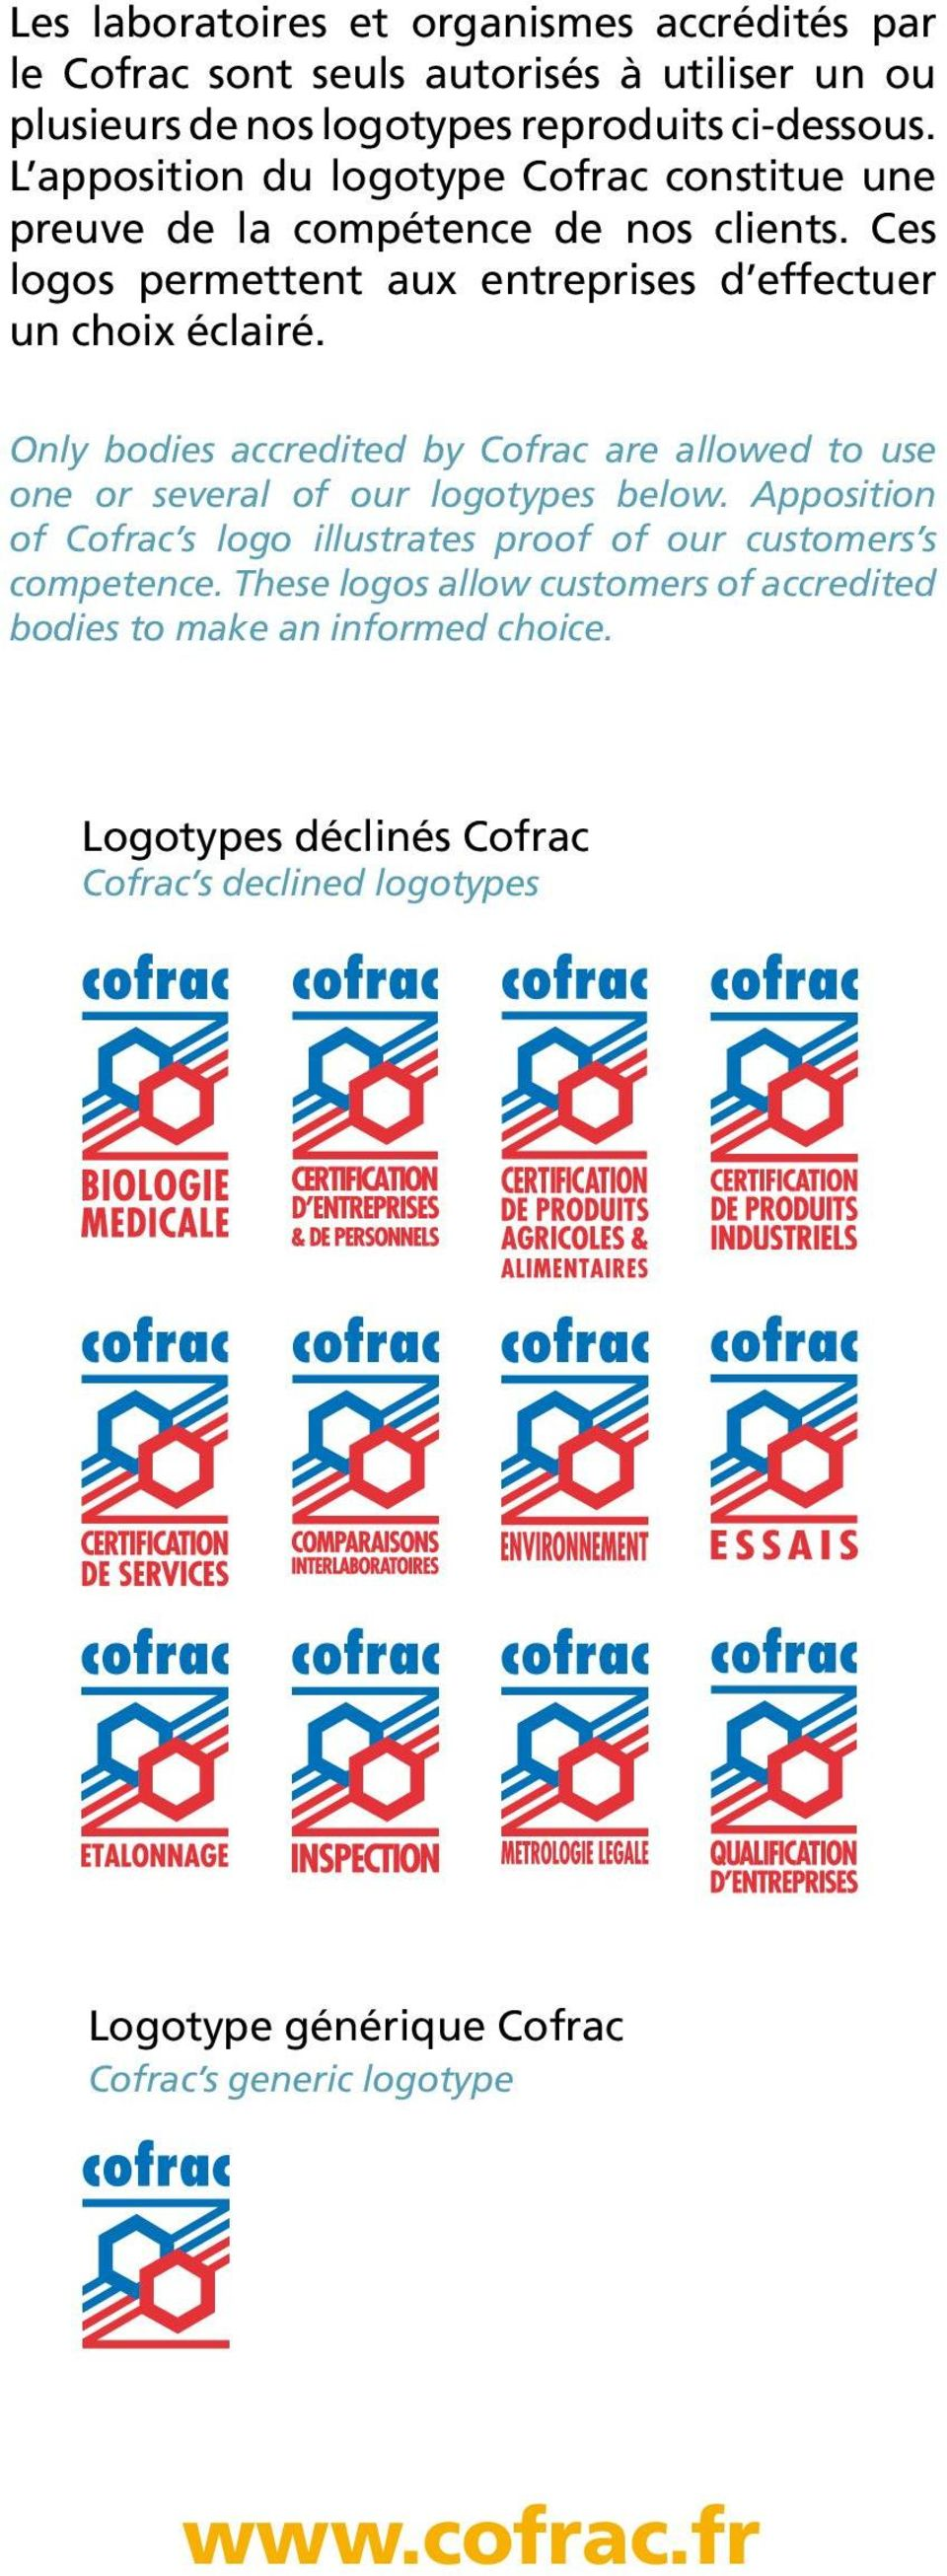 Only bodies accredited by Cofrac are allowed to use one or several of our logotypes below.